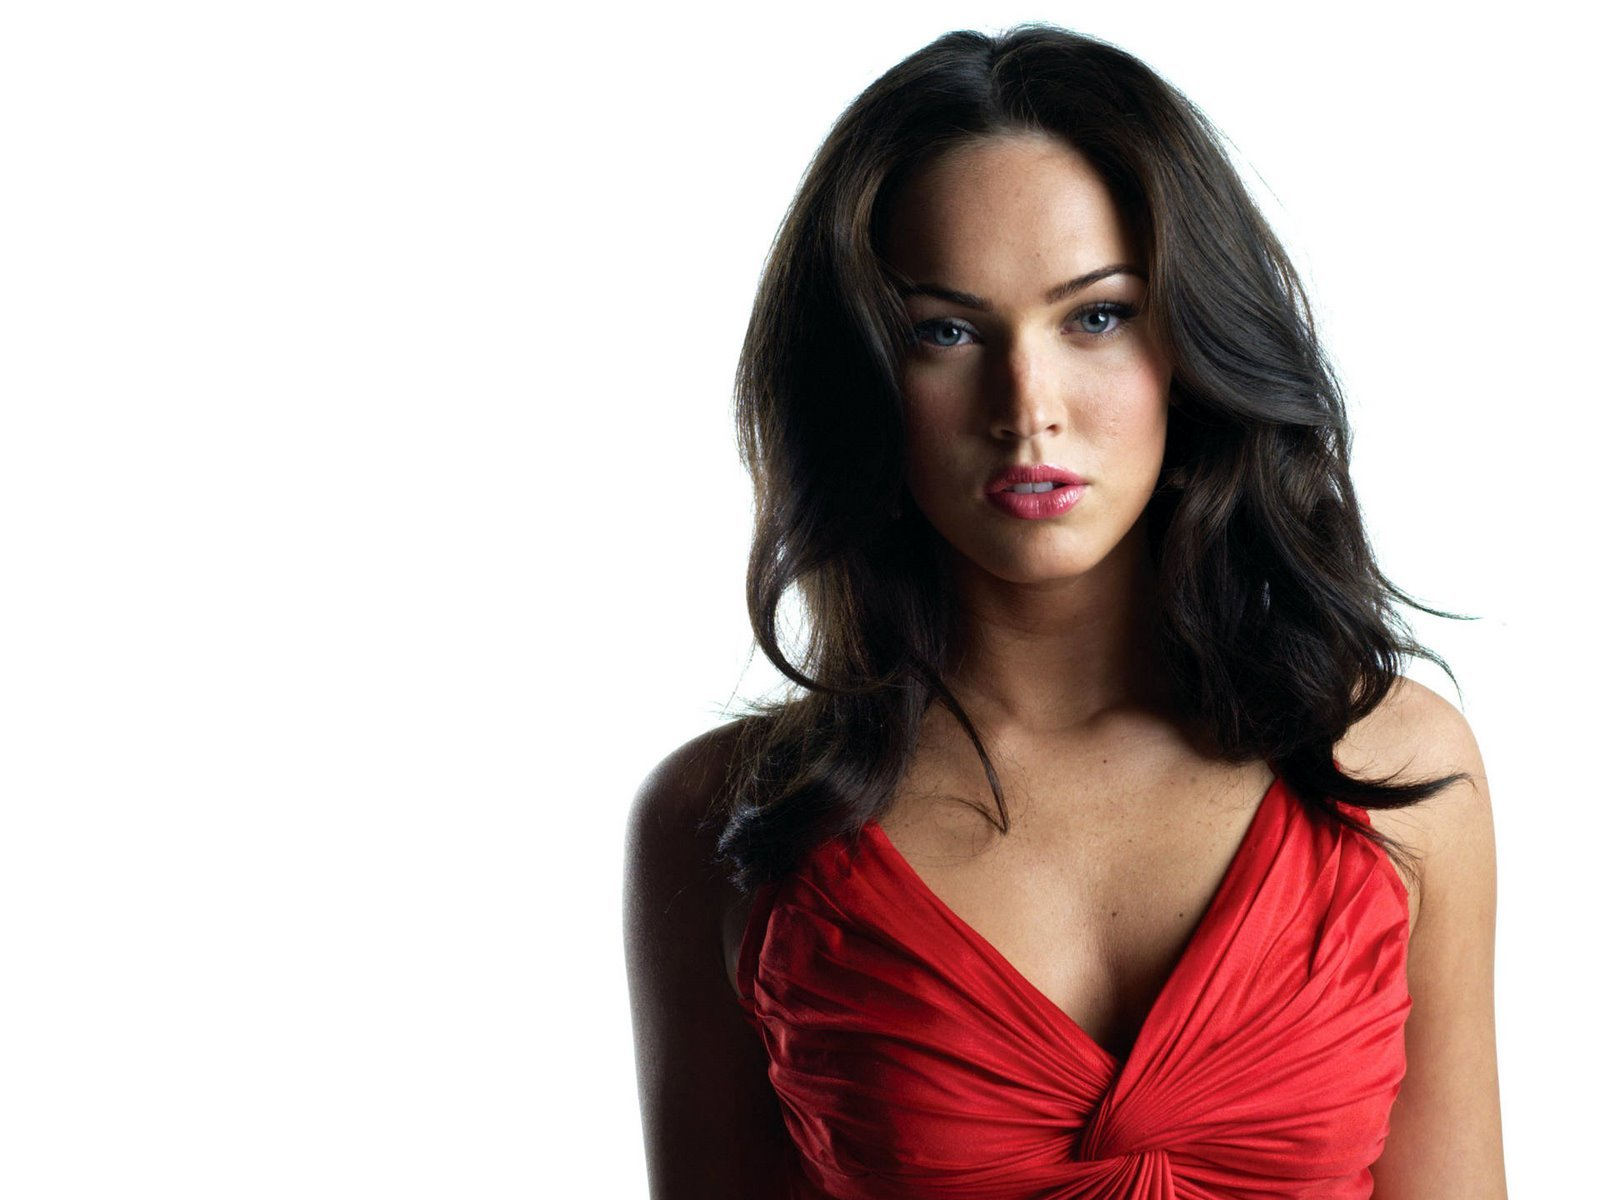 Megan Fox Wallpapers   Best HD Desktop Wallpaper 1600x1200